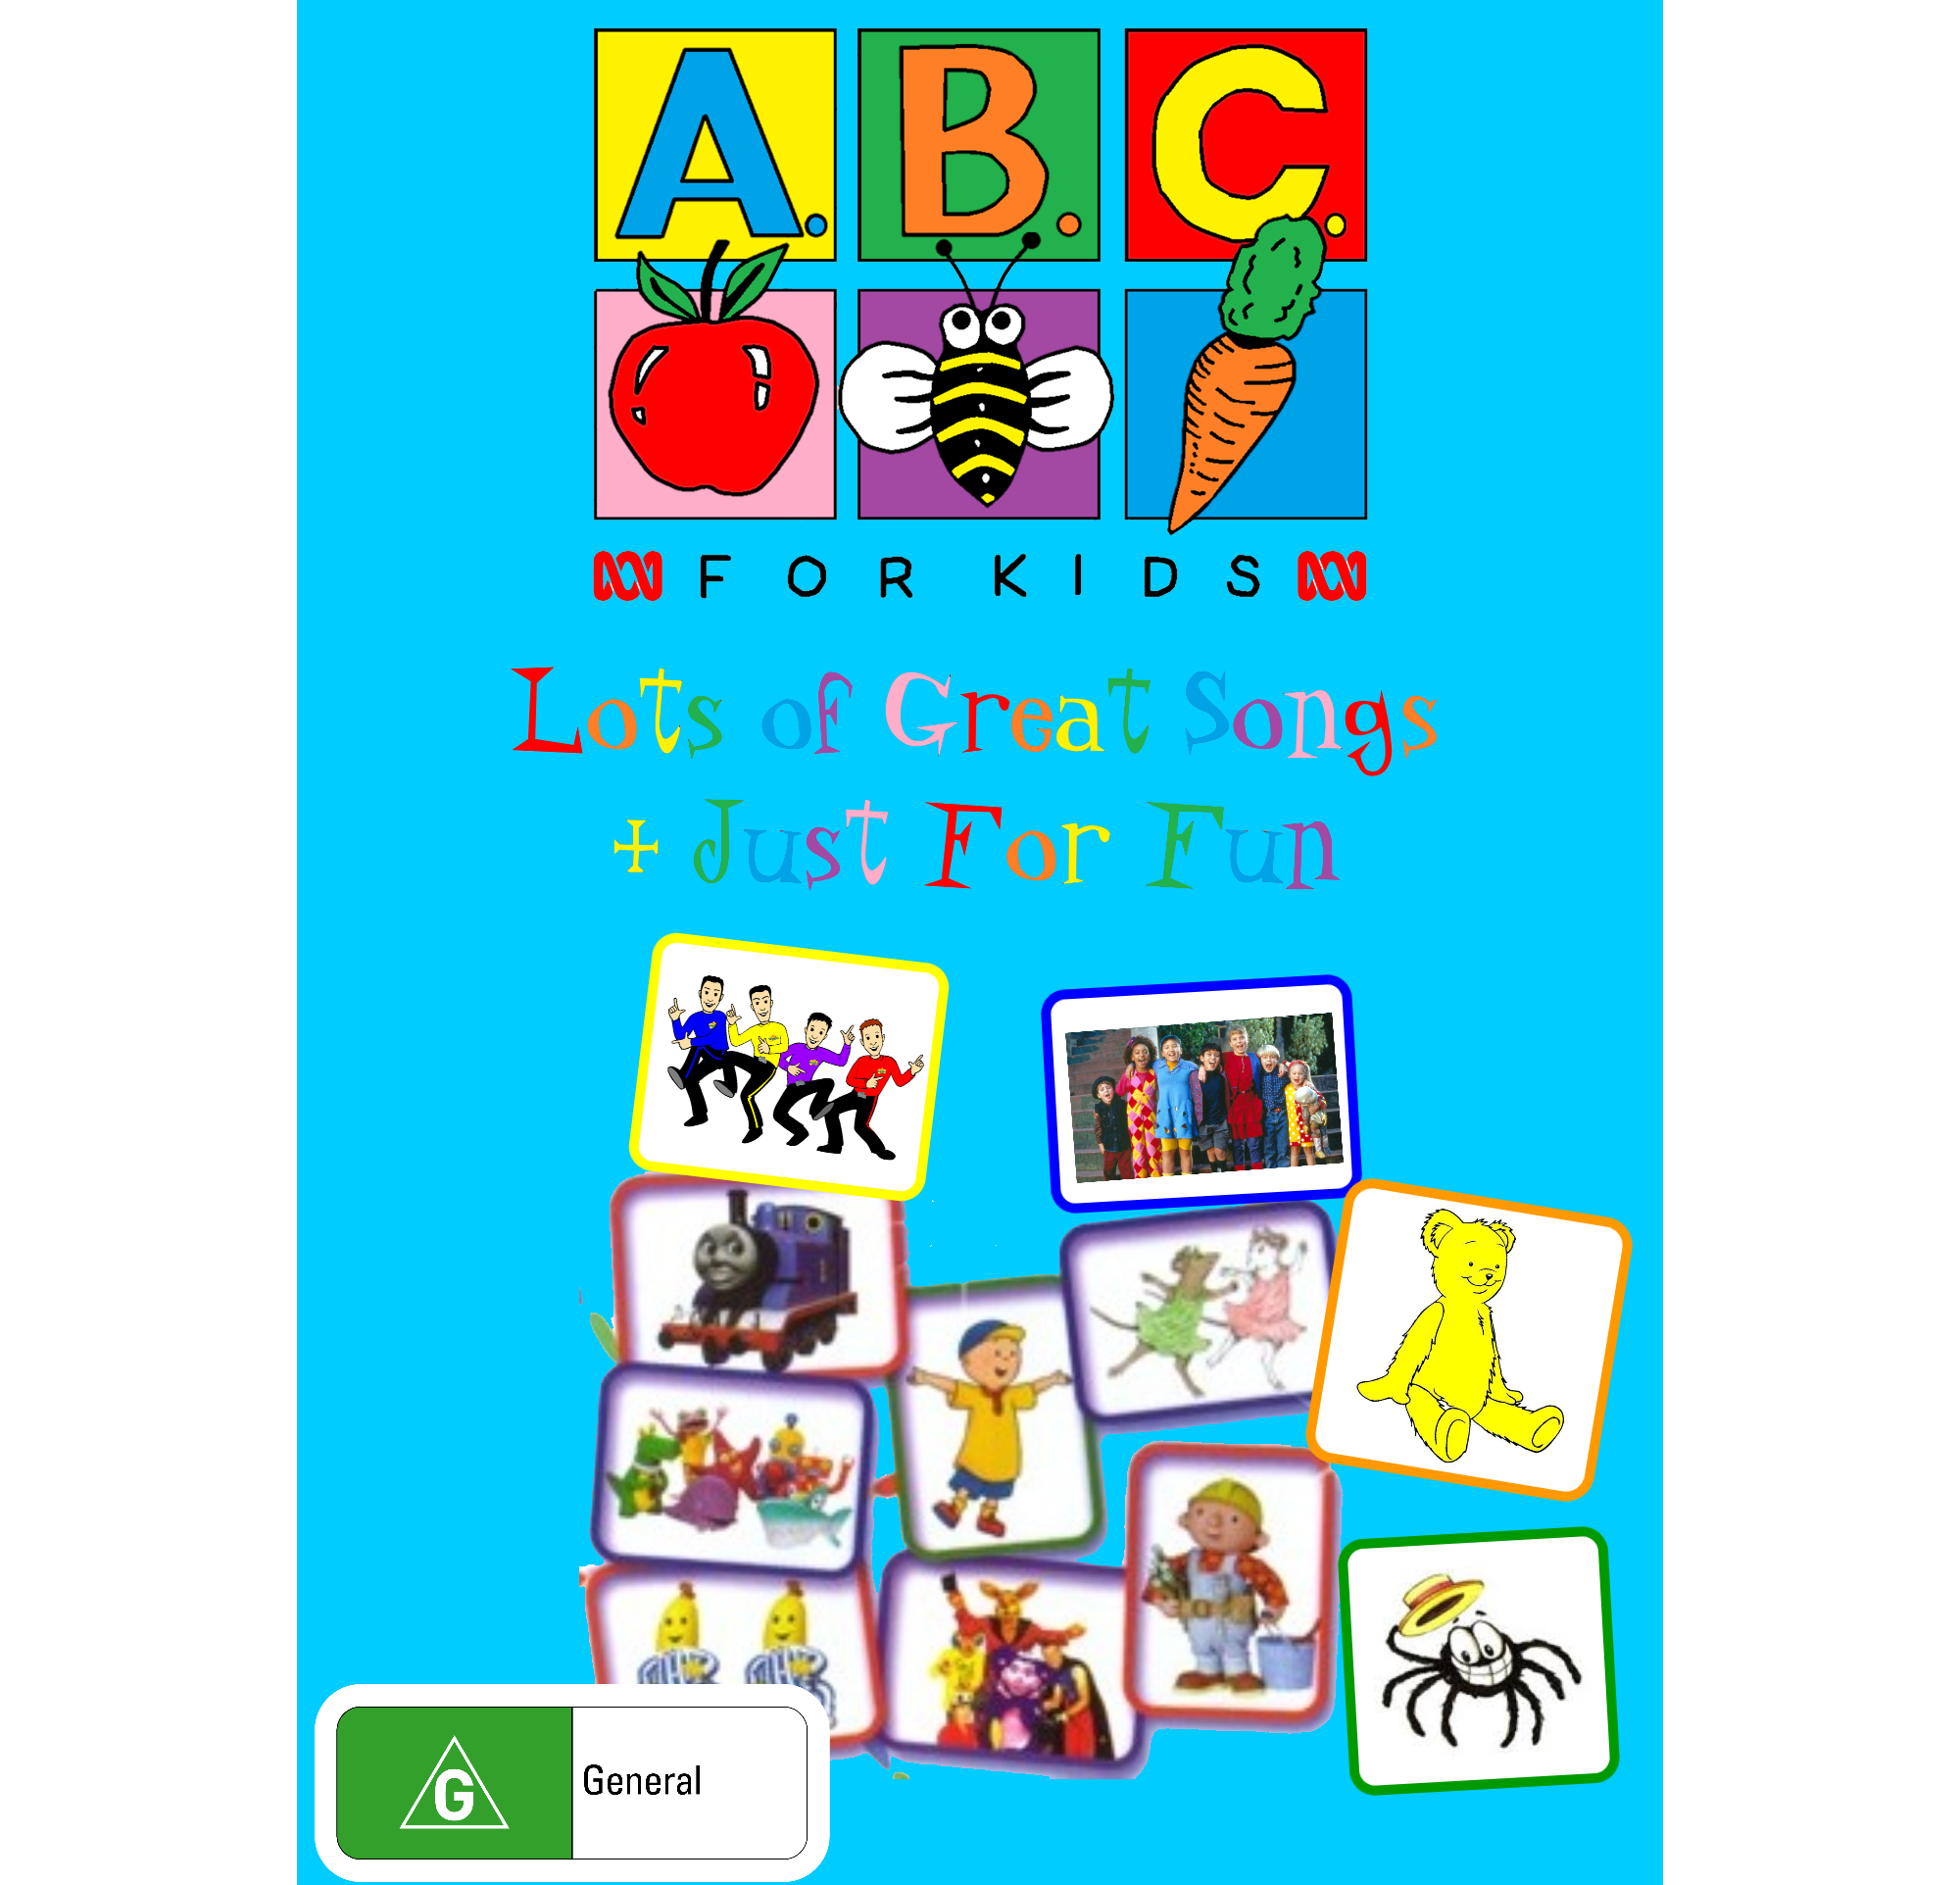 ABC For Kids - Lots of Other Great Songs + Just for Fun (video)